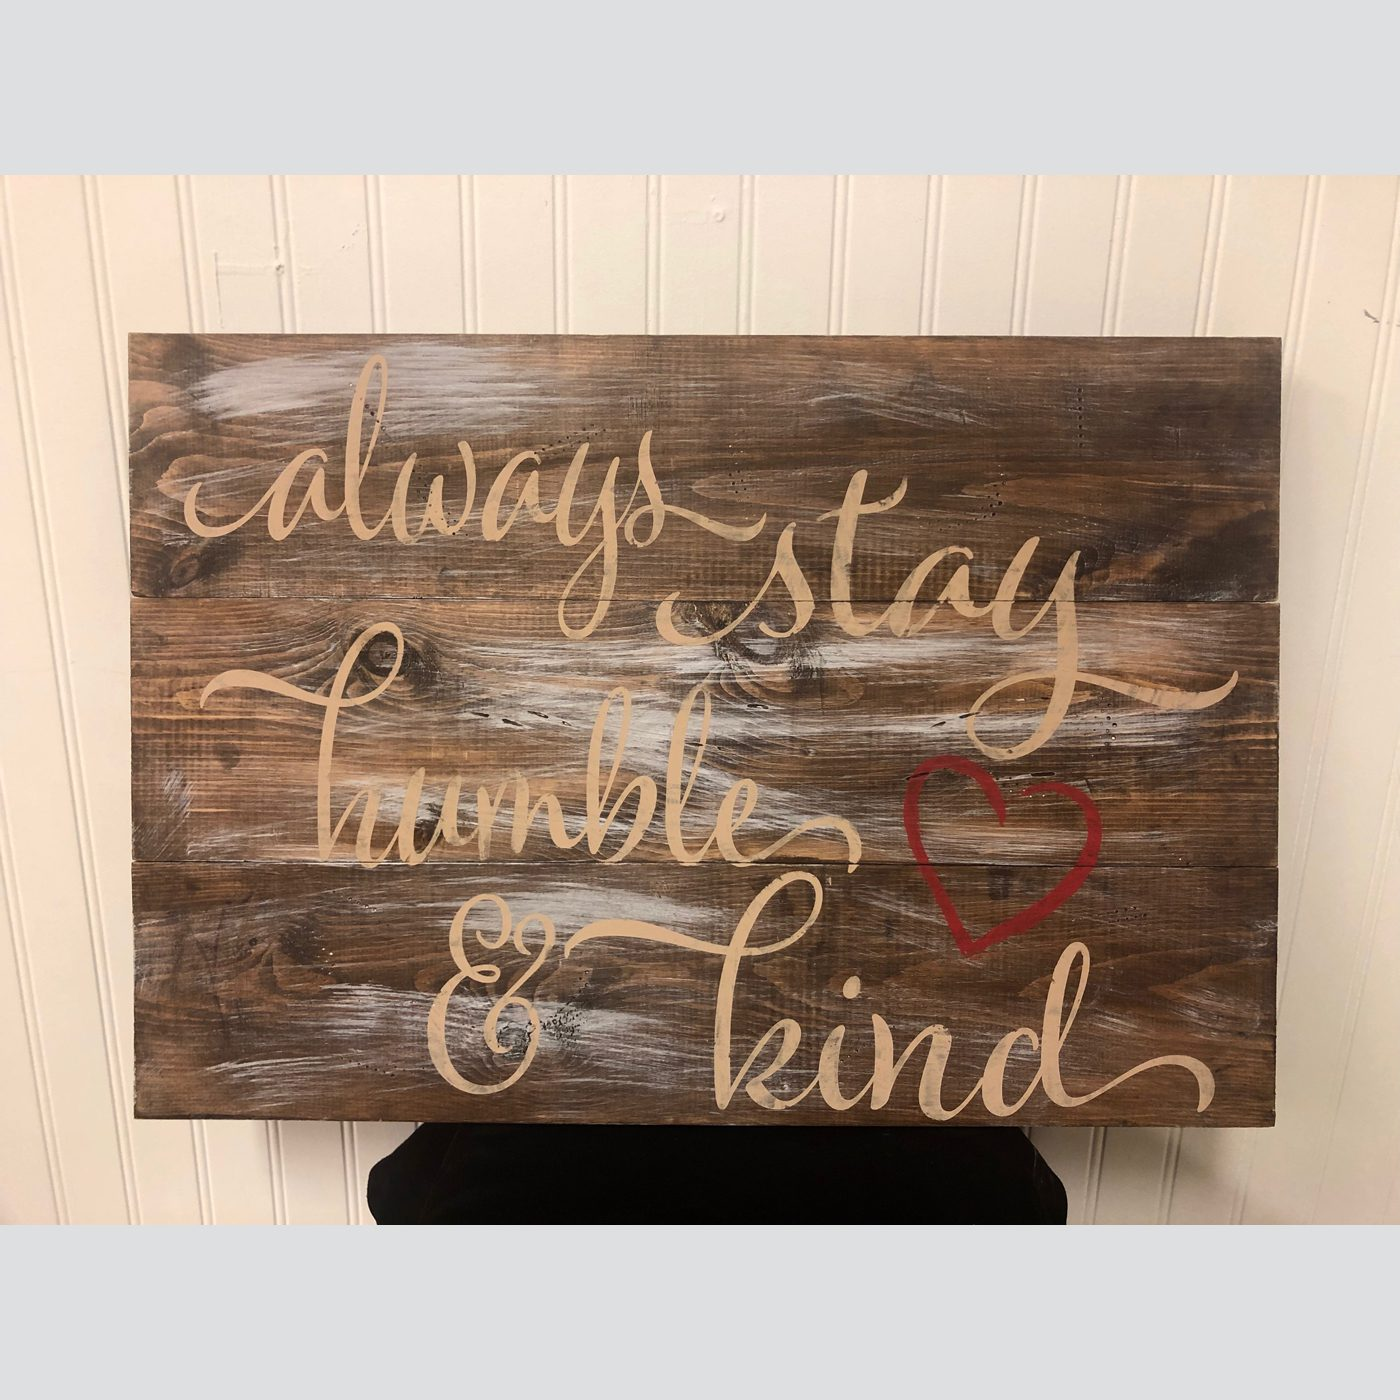 Always Stay Humble and Kind DIY Project